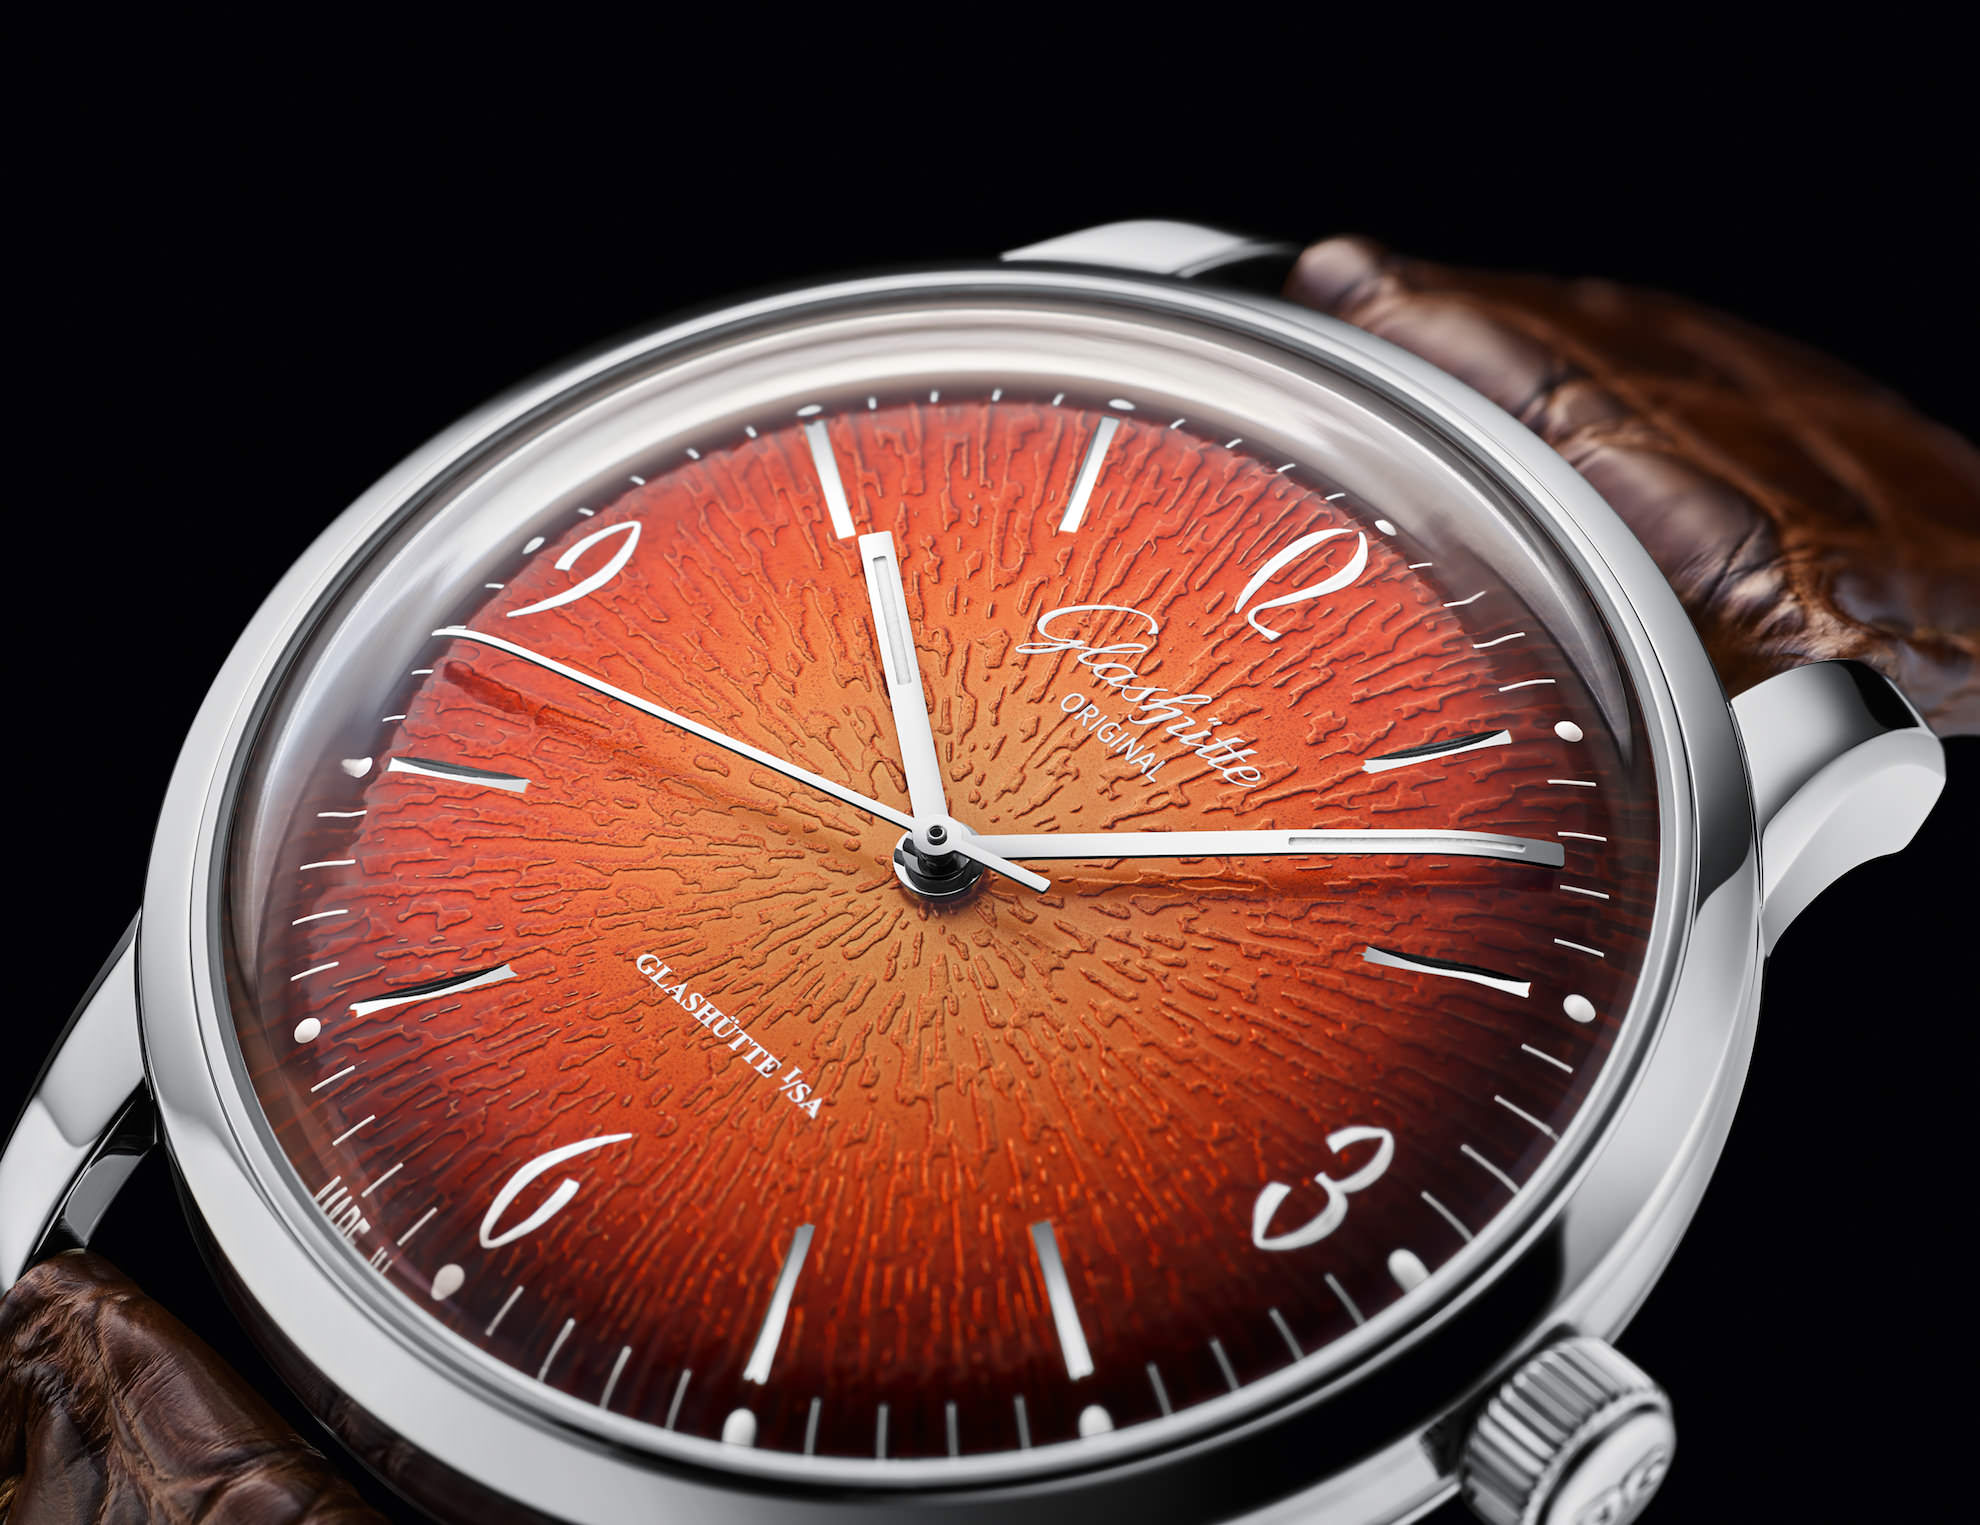 Glashütte Original Sixties 2019